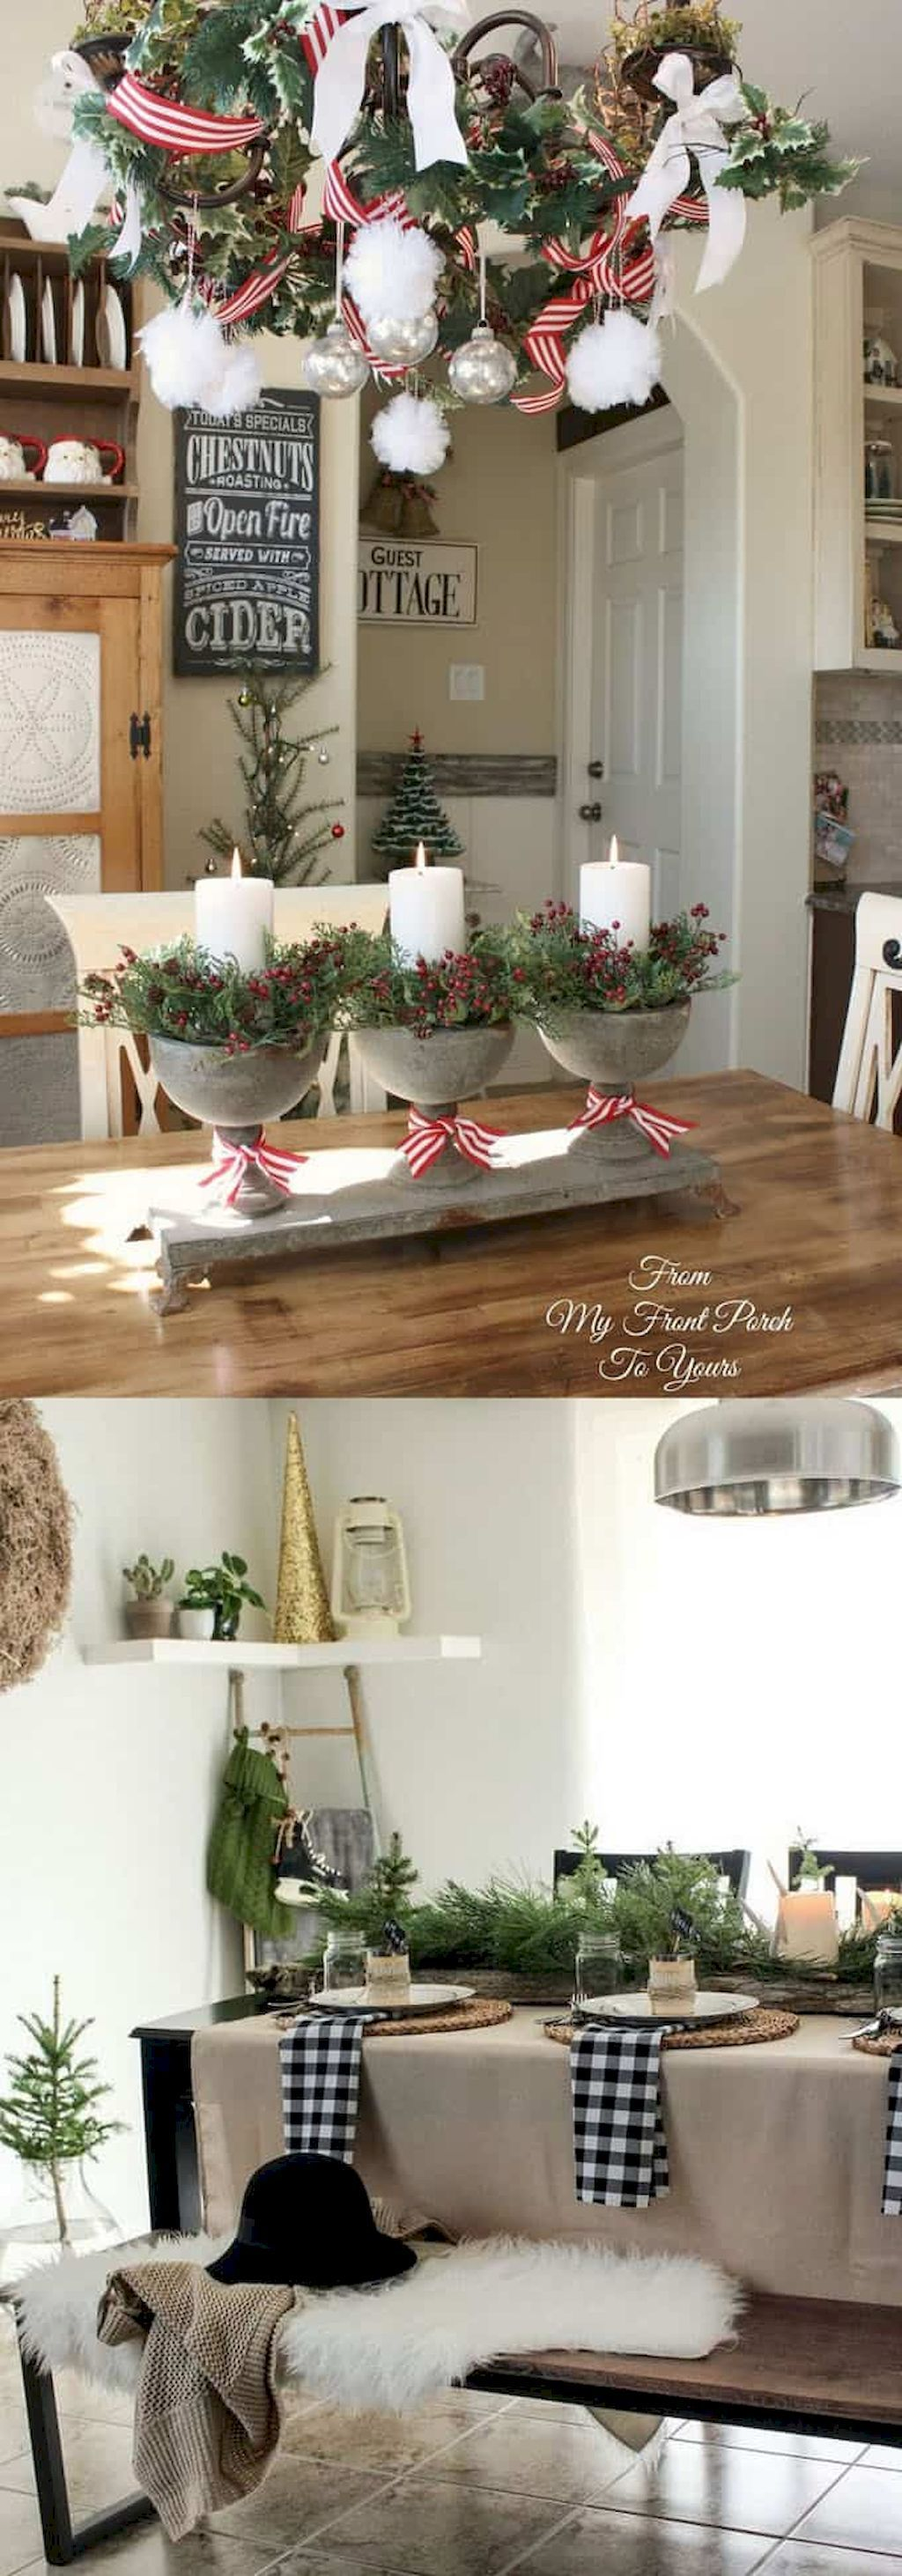 41 Favorite Christmas Decorating Ideas For Every Room in Your Home